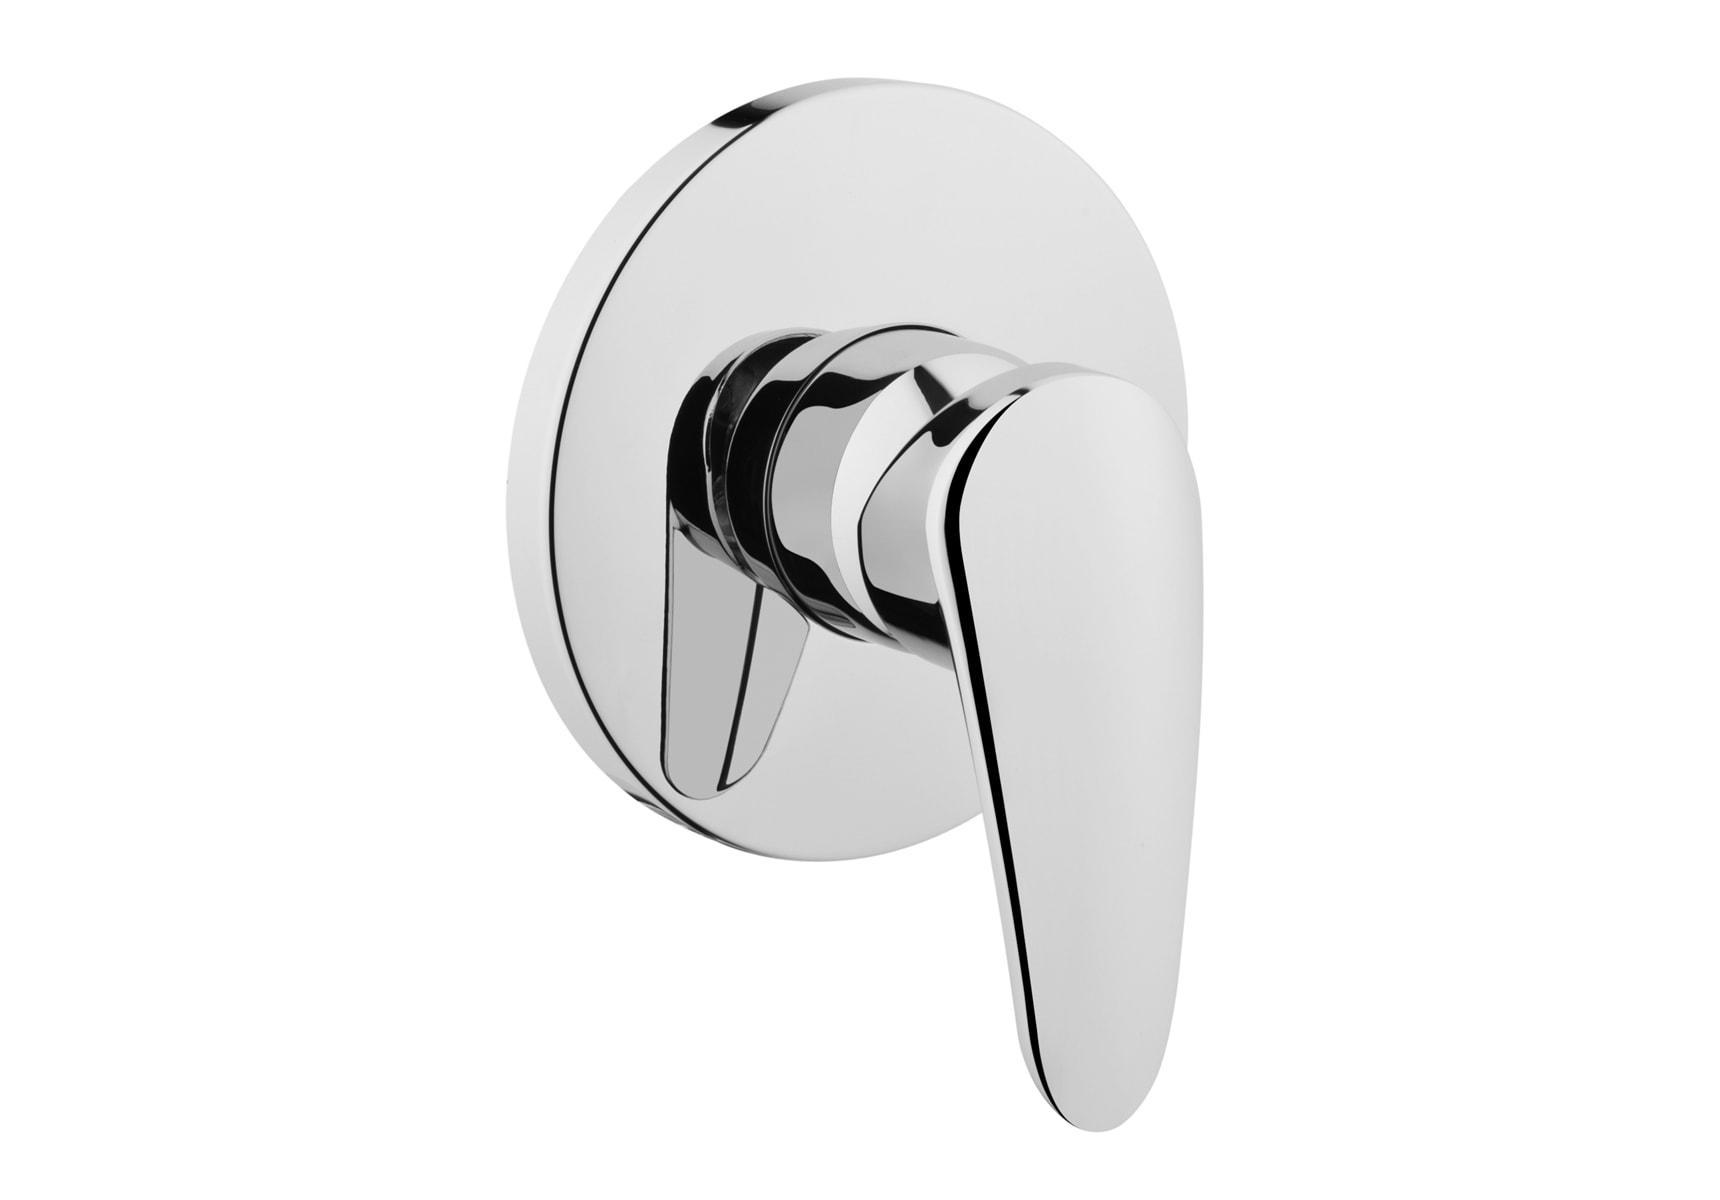 Dynamic S Built-in Bath/Shower Mixer (Exposed Part)